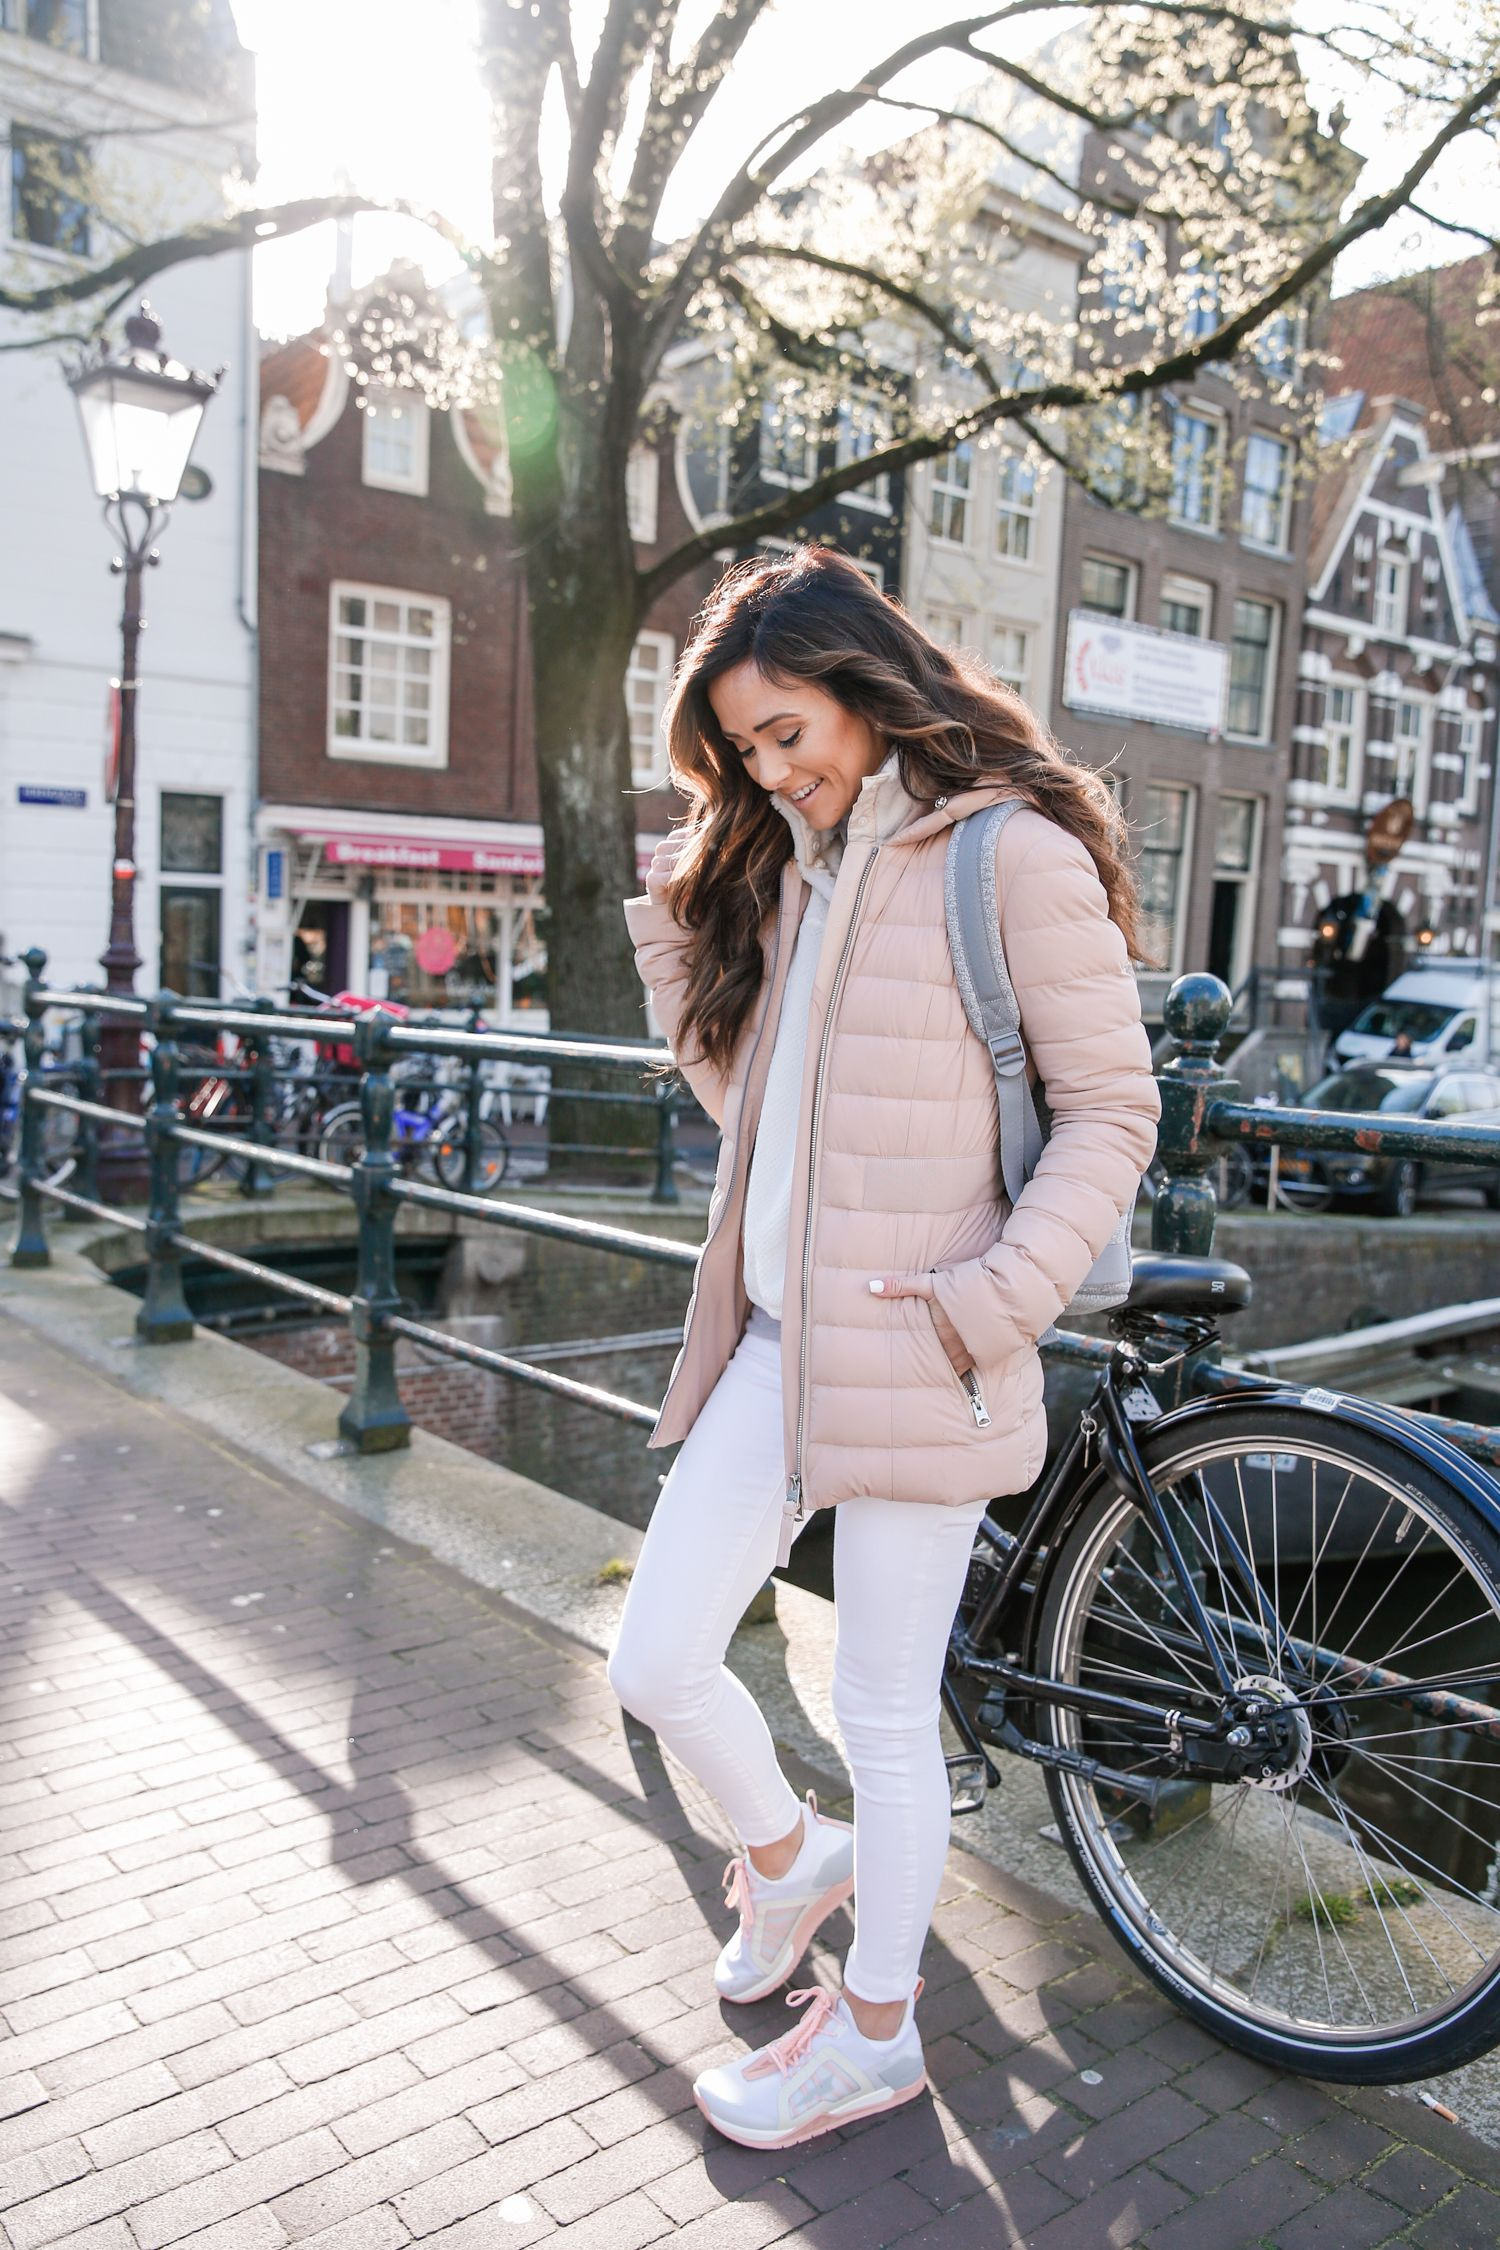 What To Wear To Explore Amsterdam | Alyson Haley